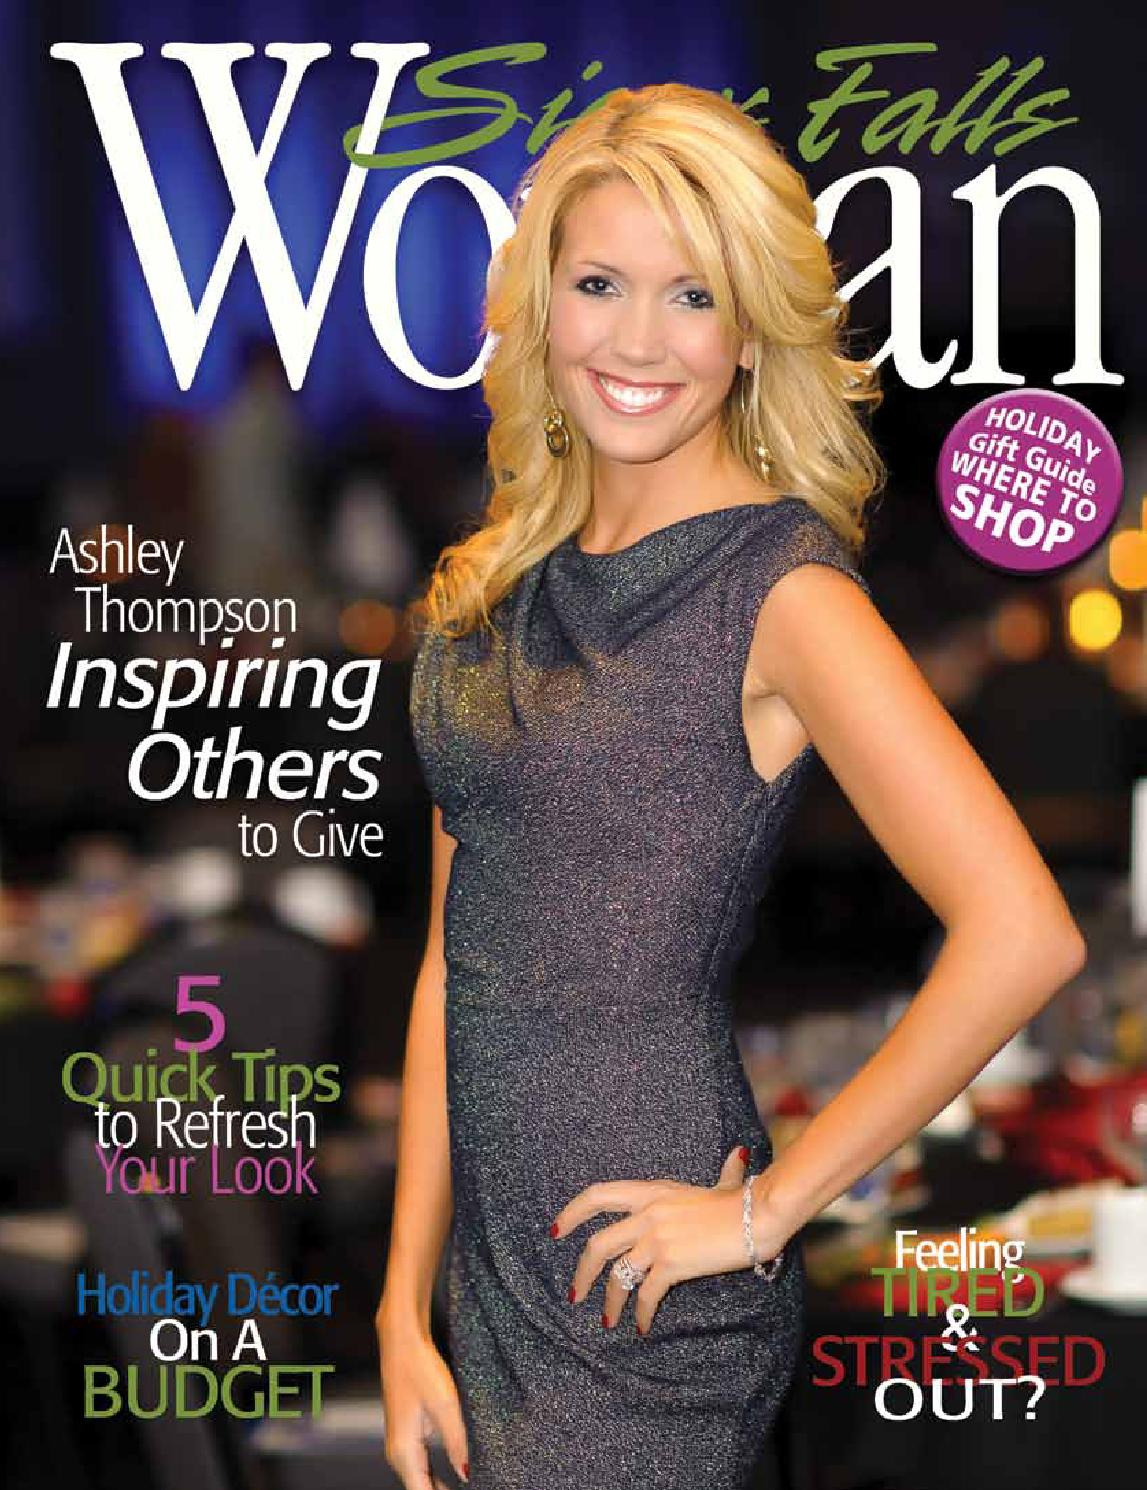 Sioux Falls Woman Magazine Holiday 2013 by Sioux Falls Woman